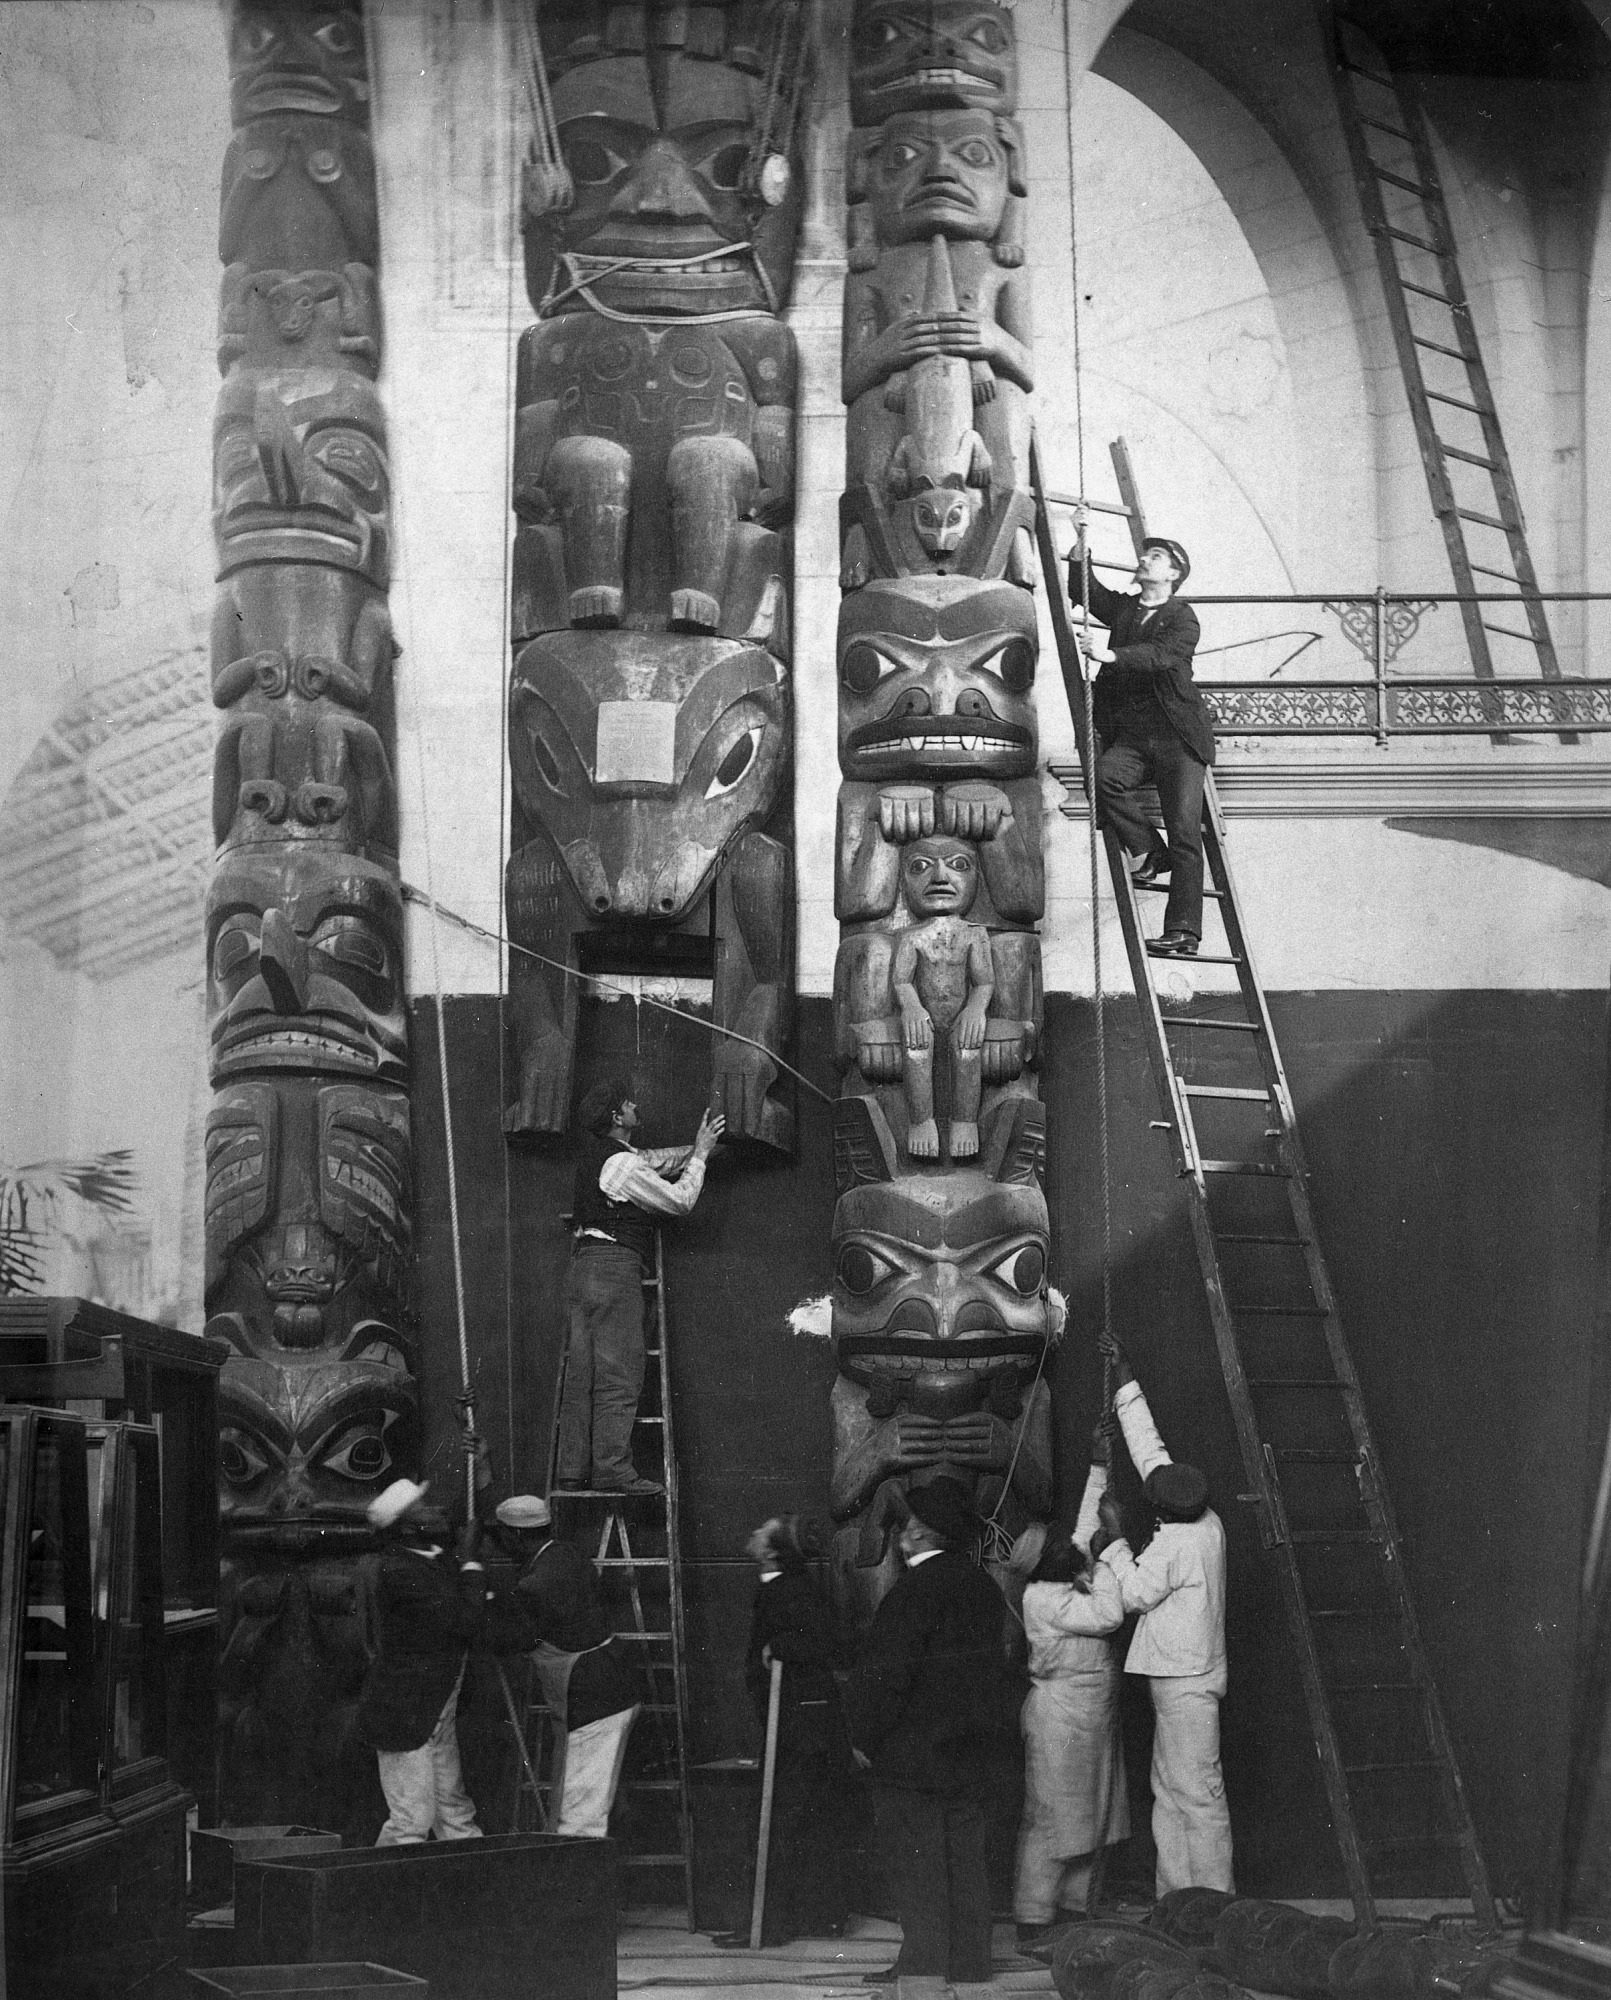 Installing Totem Poles in U.S. National Museum